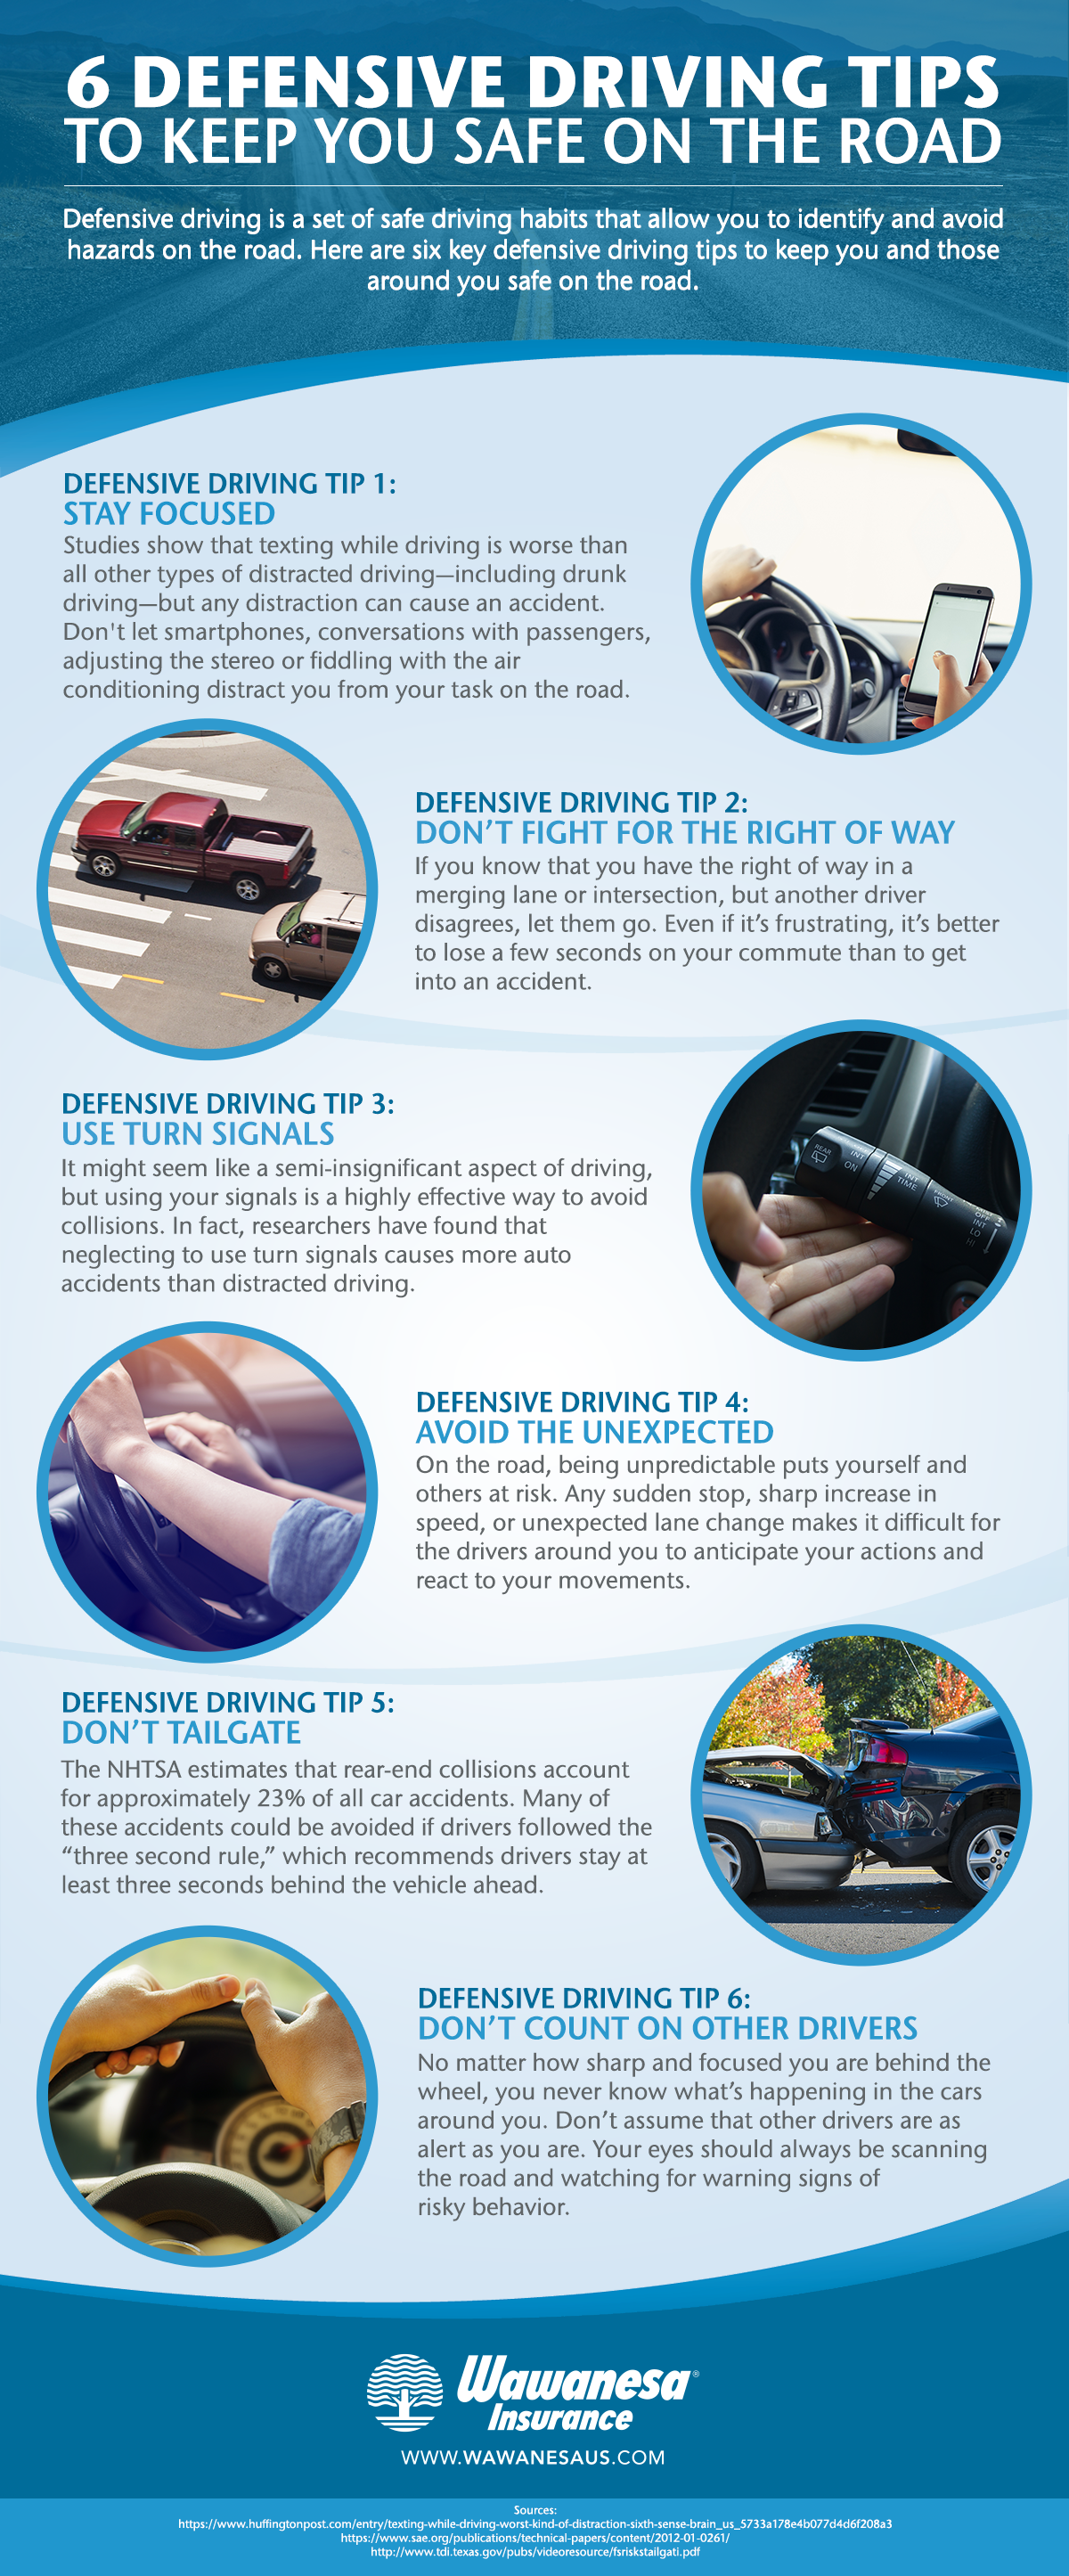 Rule three driving second How to